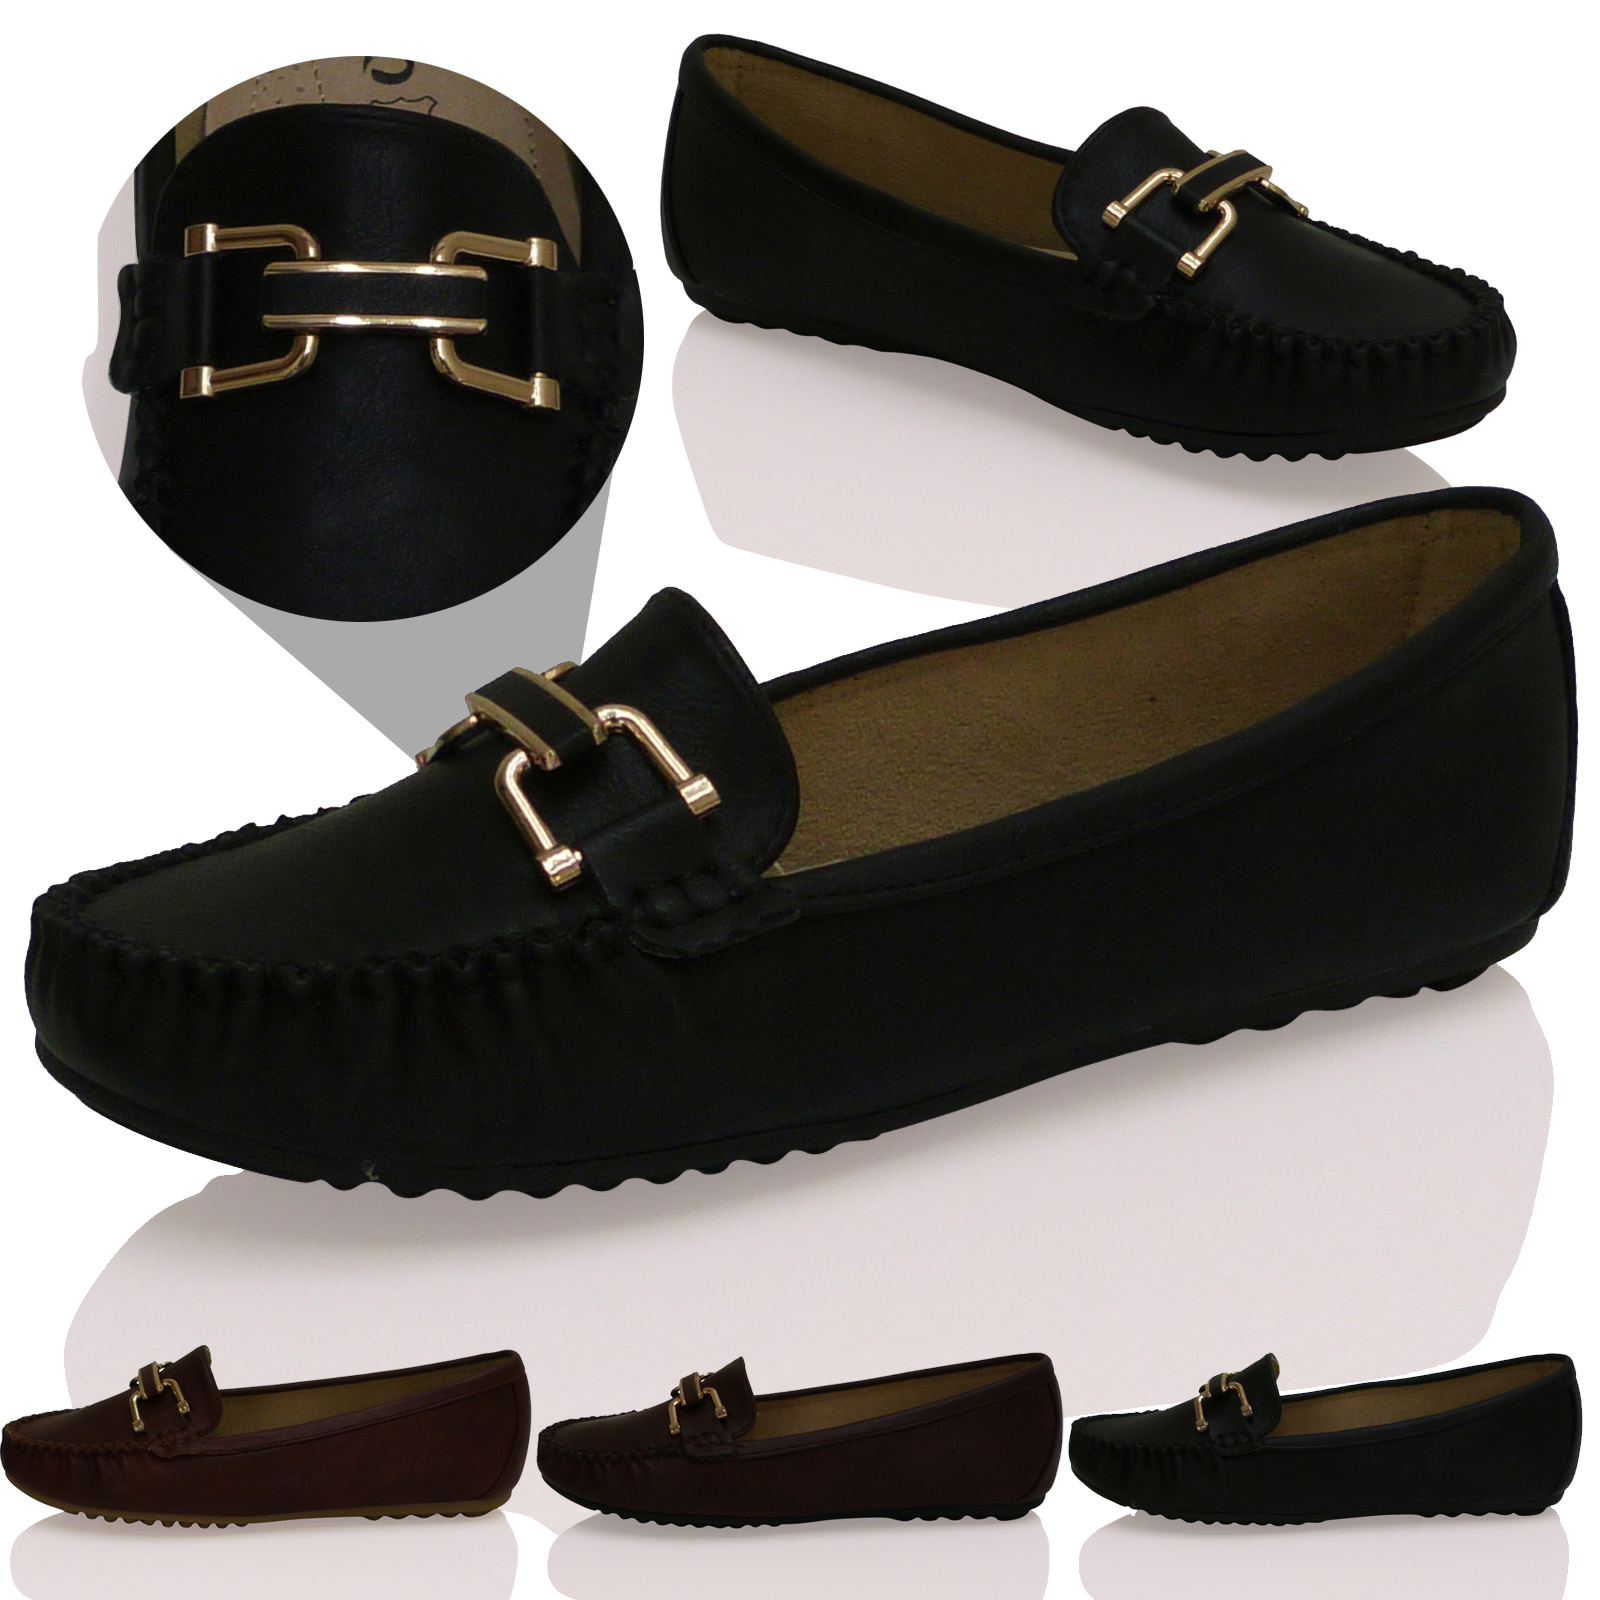 NEW LADIES WOMENS CASUAL FLATS LOAFERS BOAT SHOES SMART OFFICE WORK PUMPS SIZE | EBay